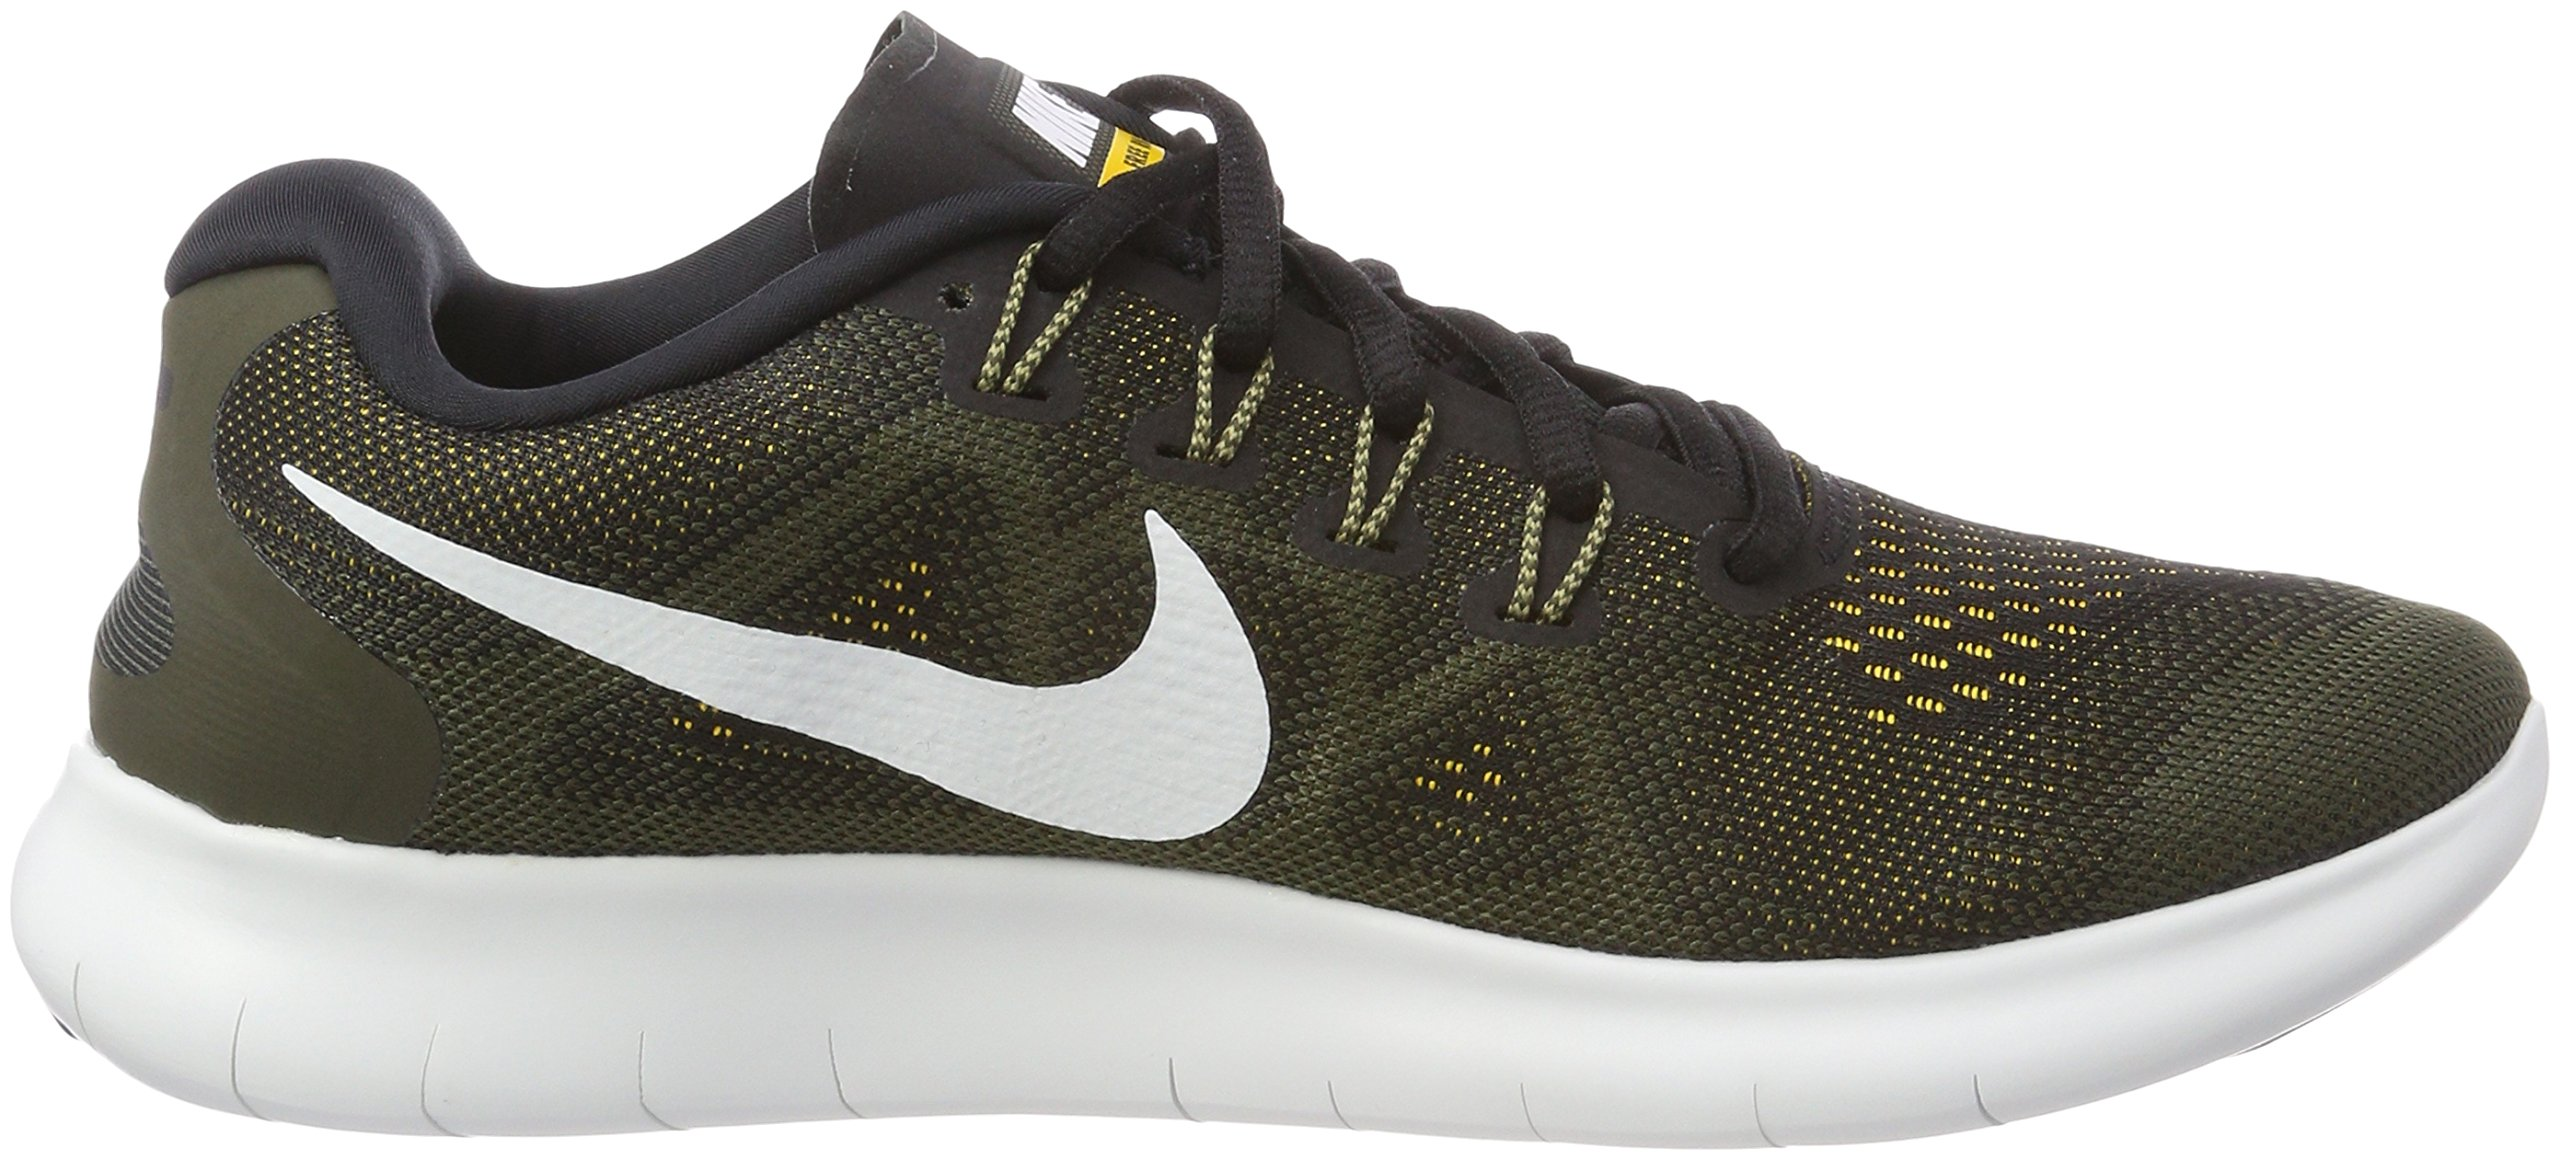 NIKE Free Rn 2017 Mens Style: 880839-008 Size: 8 by Nike (Image #6)